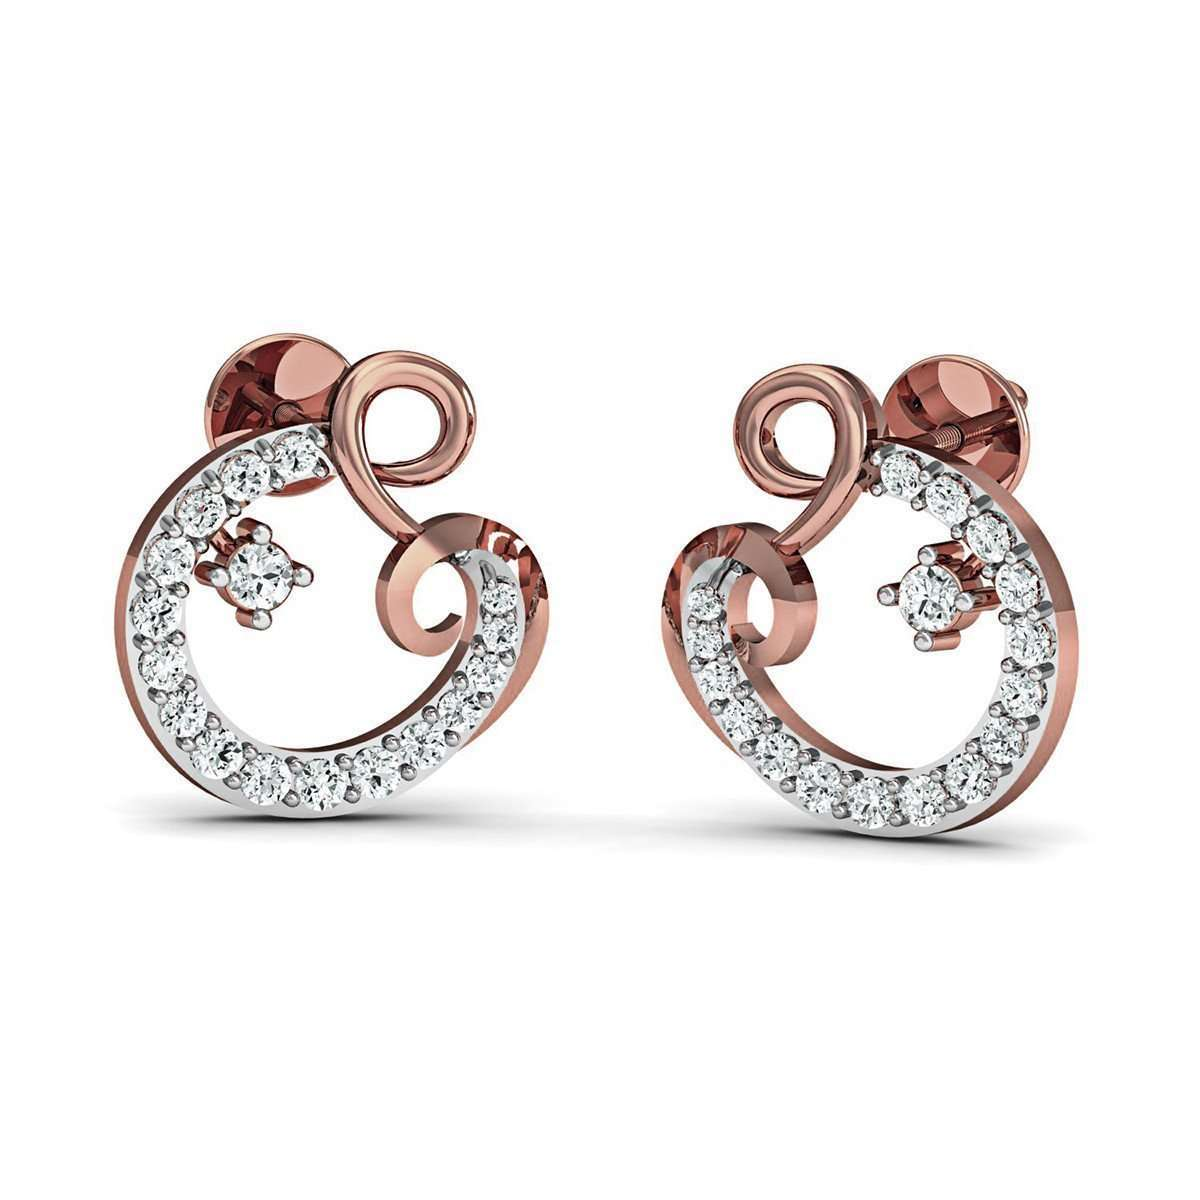 14kt Rose Gold Pave Earrings Handset with 34 Premium Diamonds-Diamoire Jewels-JewelStreet EU